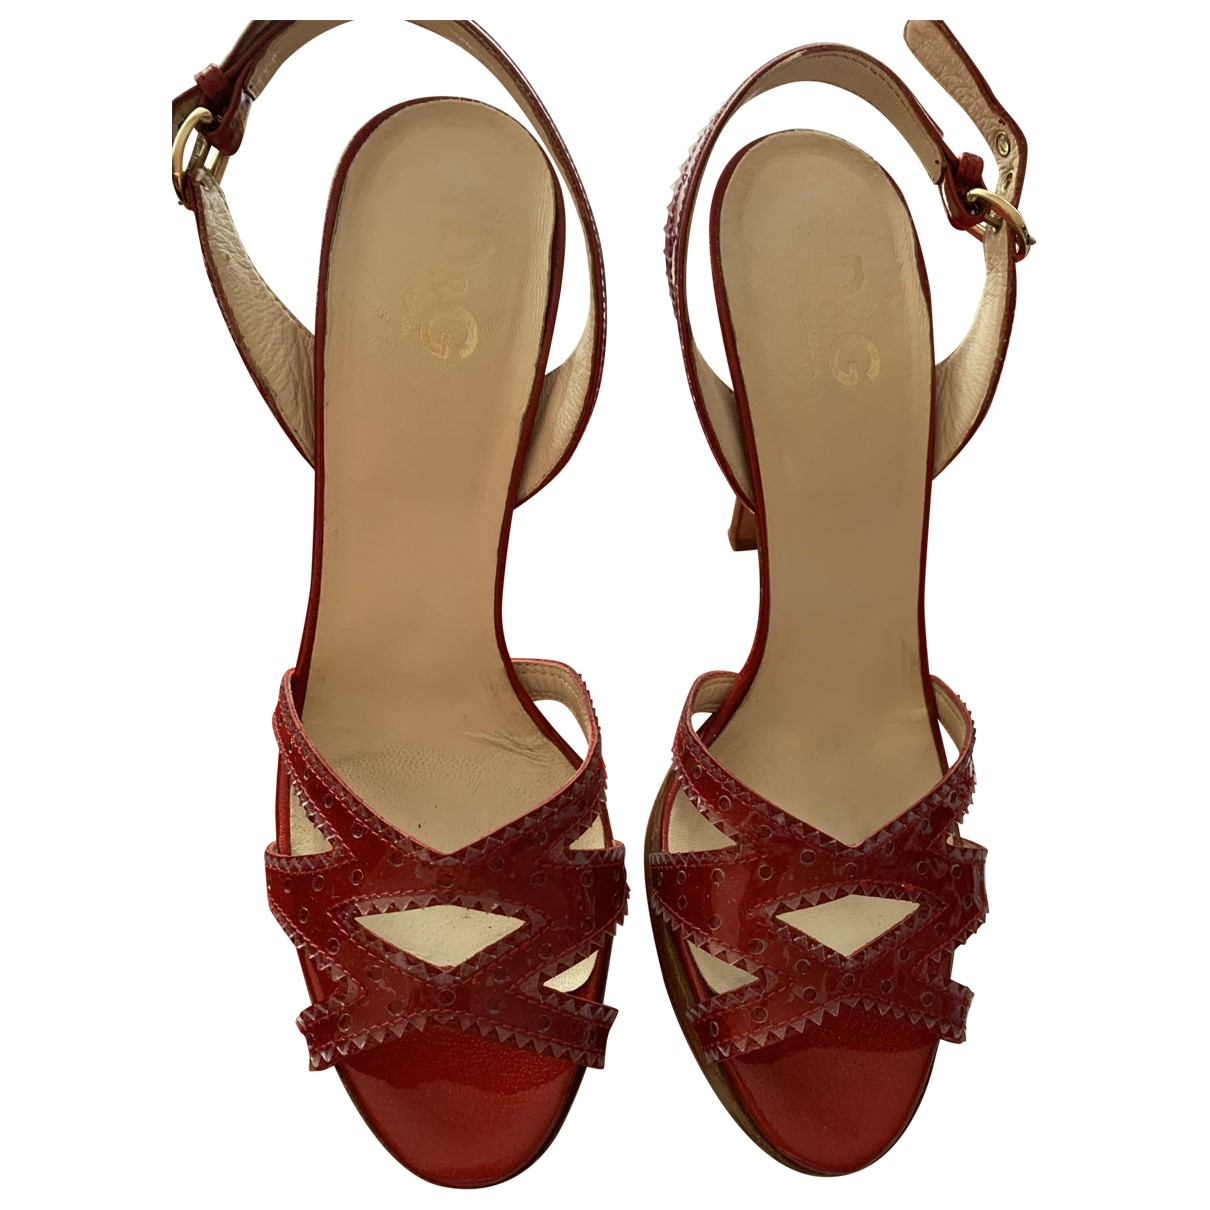 D&g \N Red Leather Heels for Women 40 EU